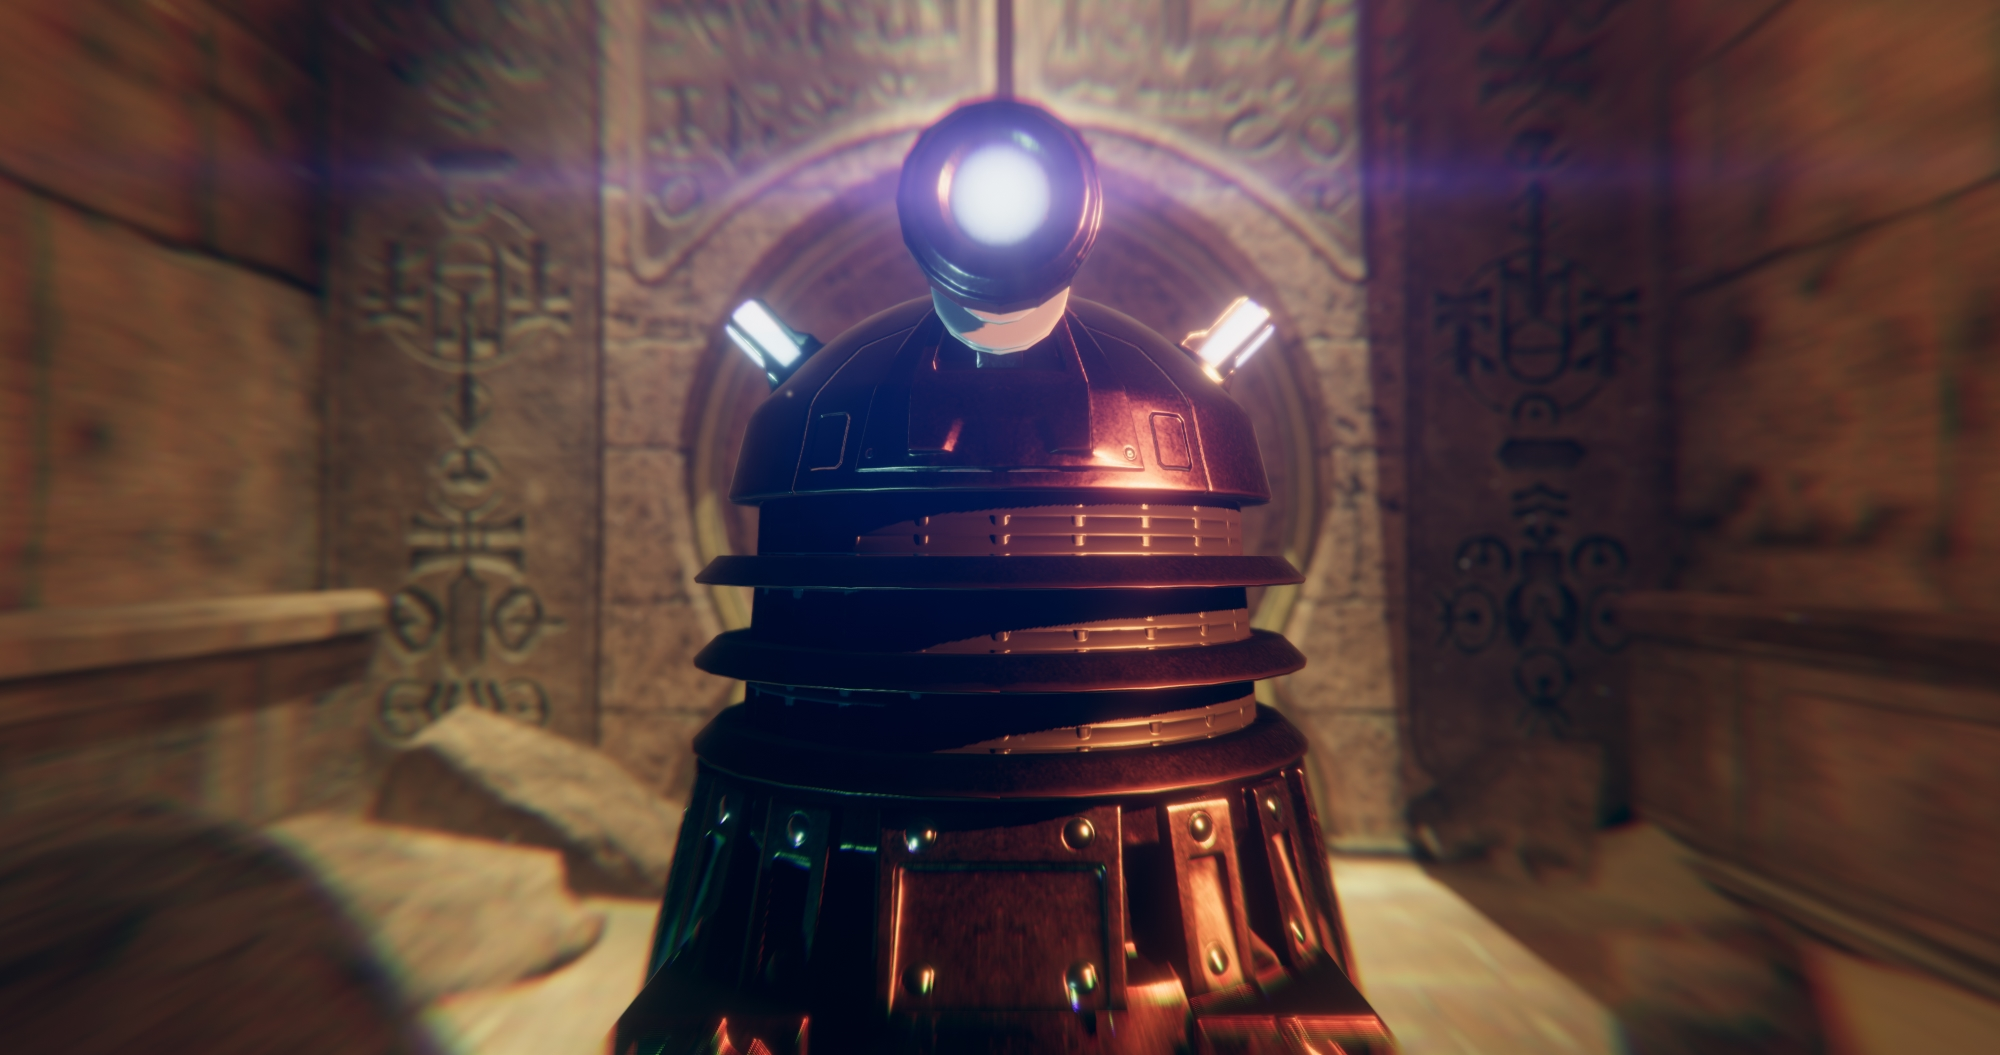 Doctor Who VR video game The Edge Of Time coming this year – and we've played it!